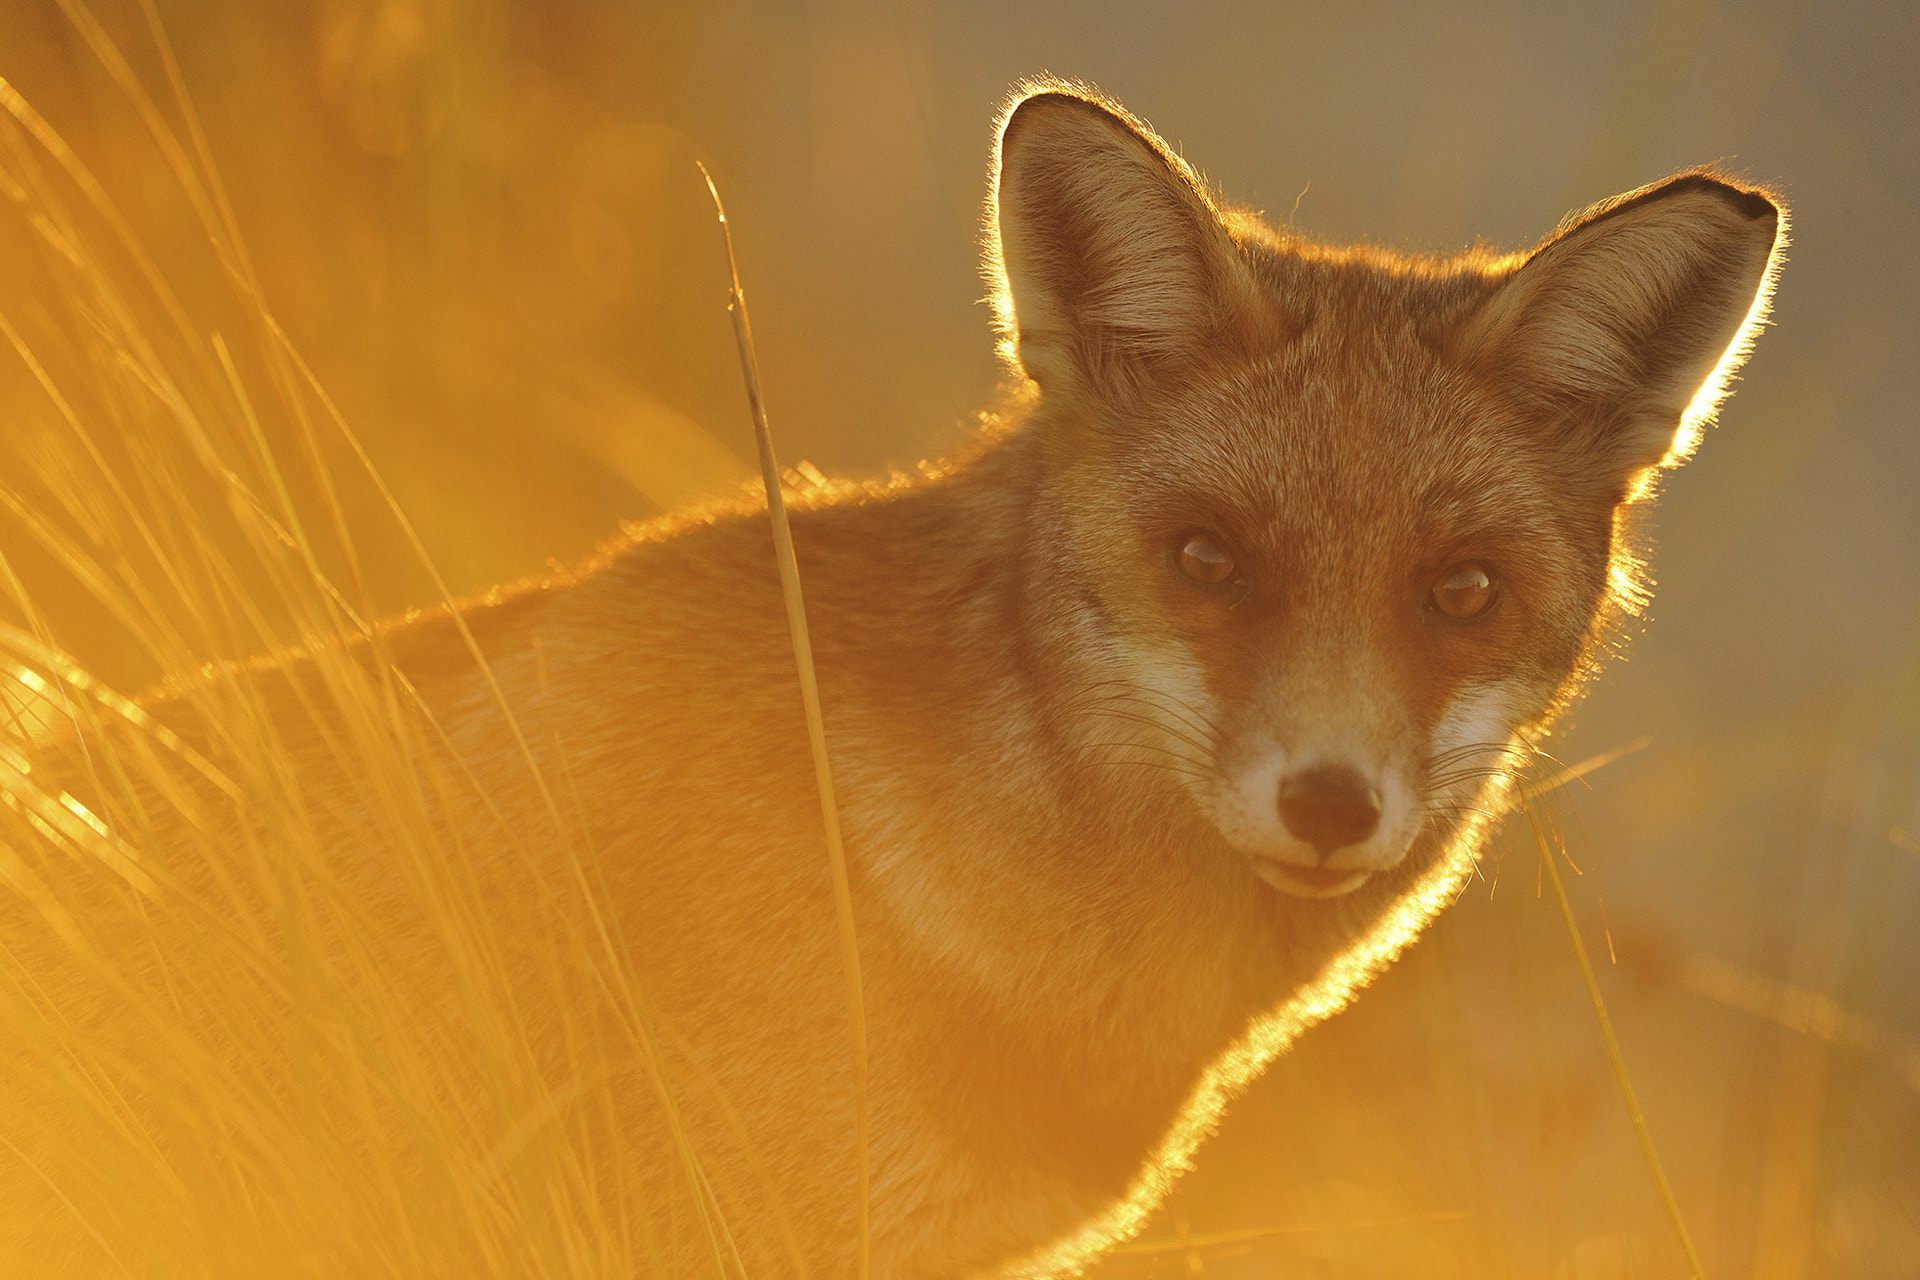 Photograph Golden hour fox by Yves Adams on 500px